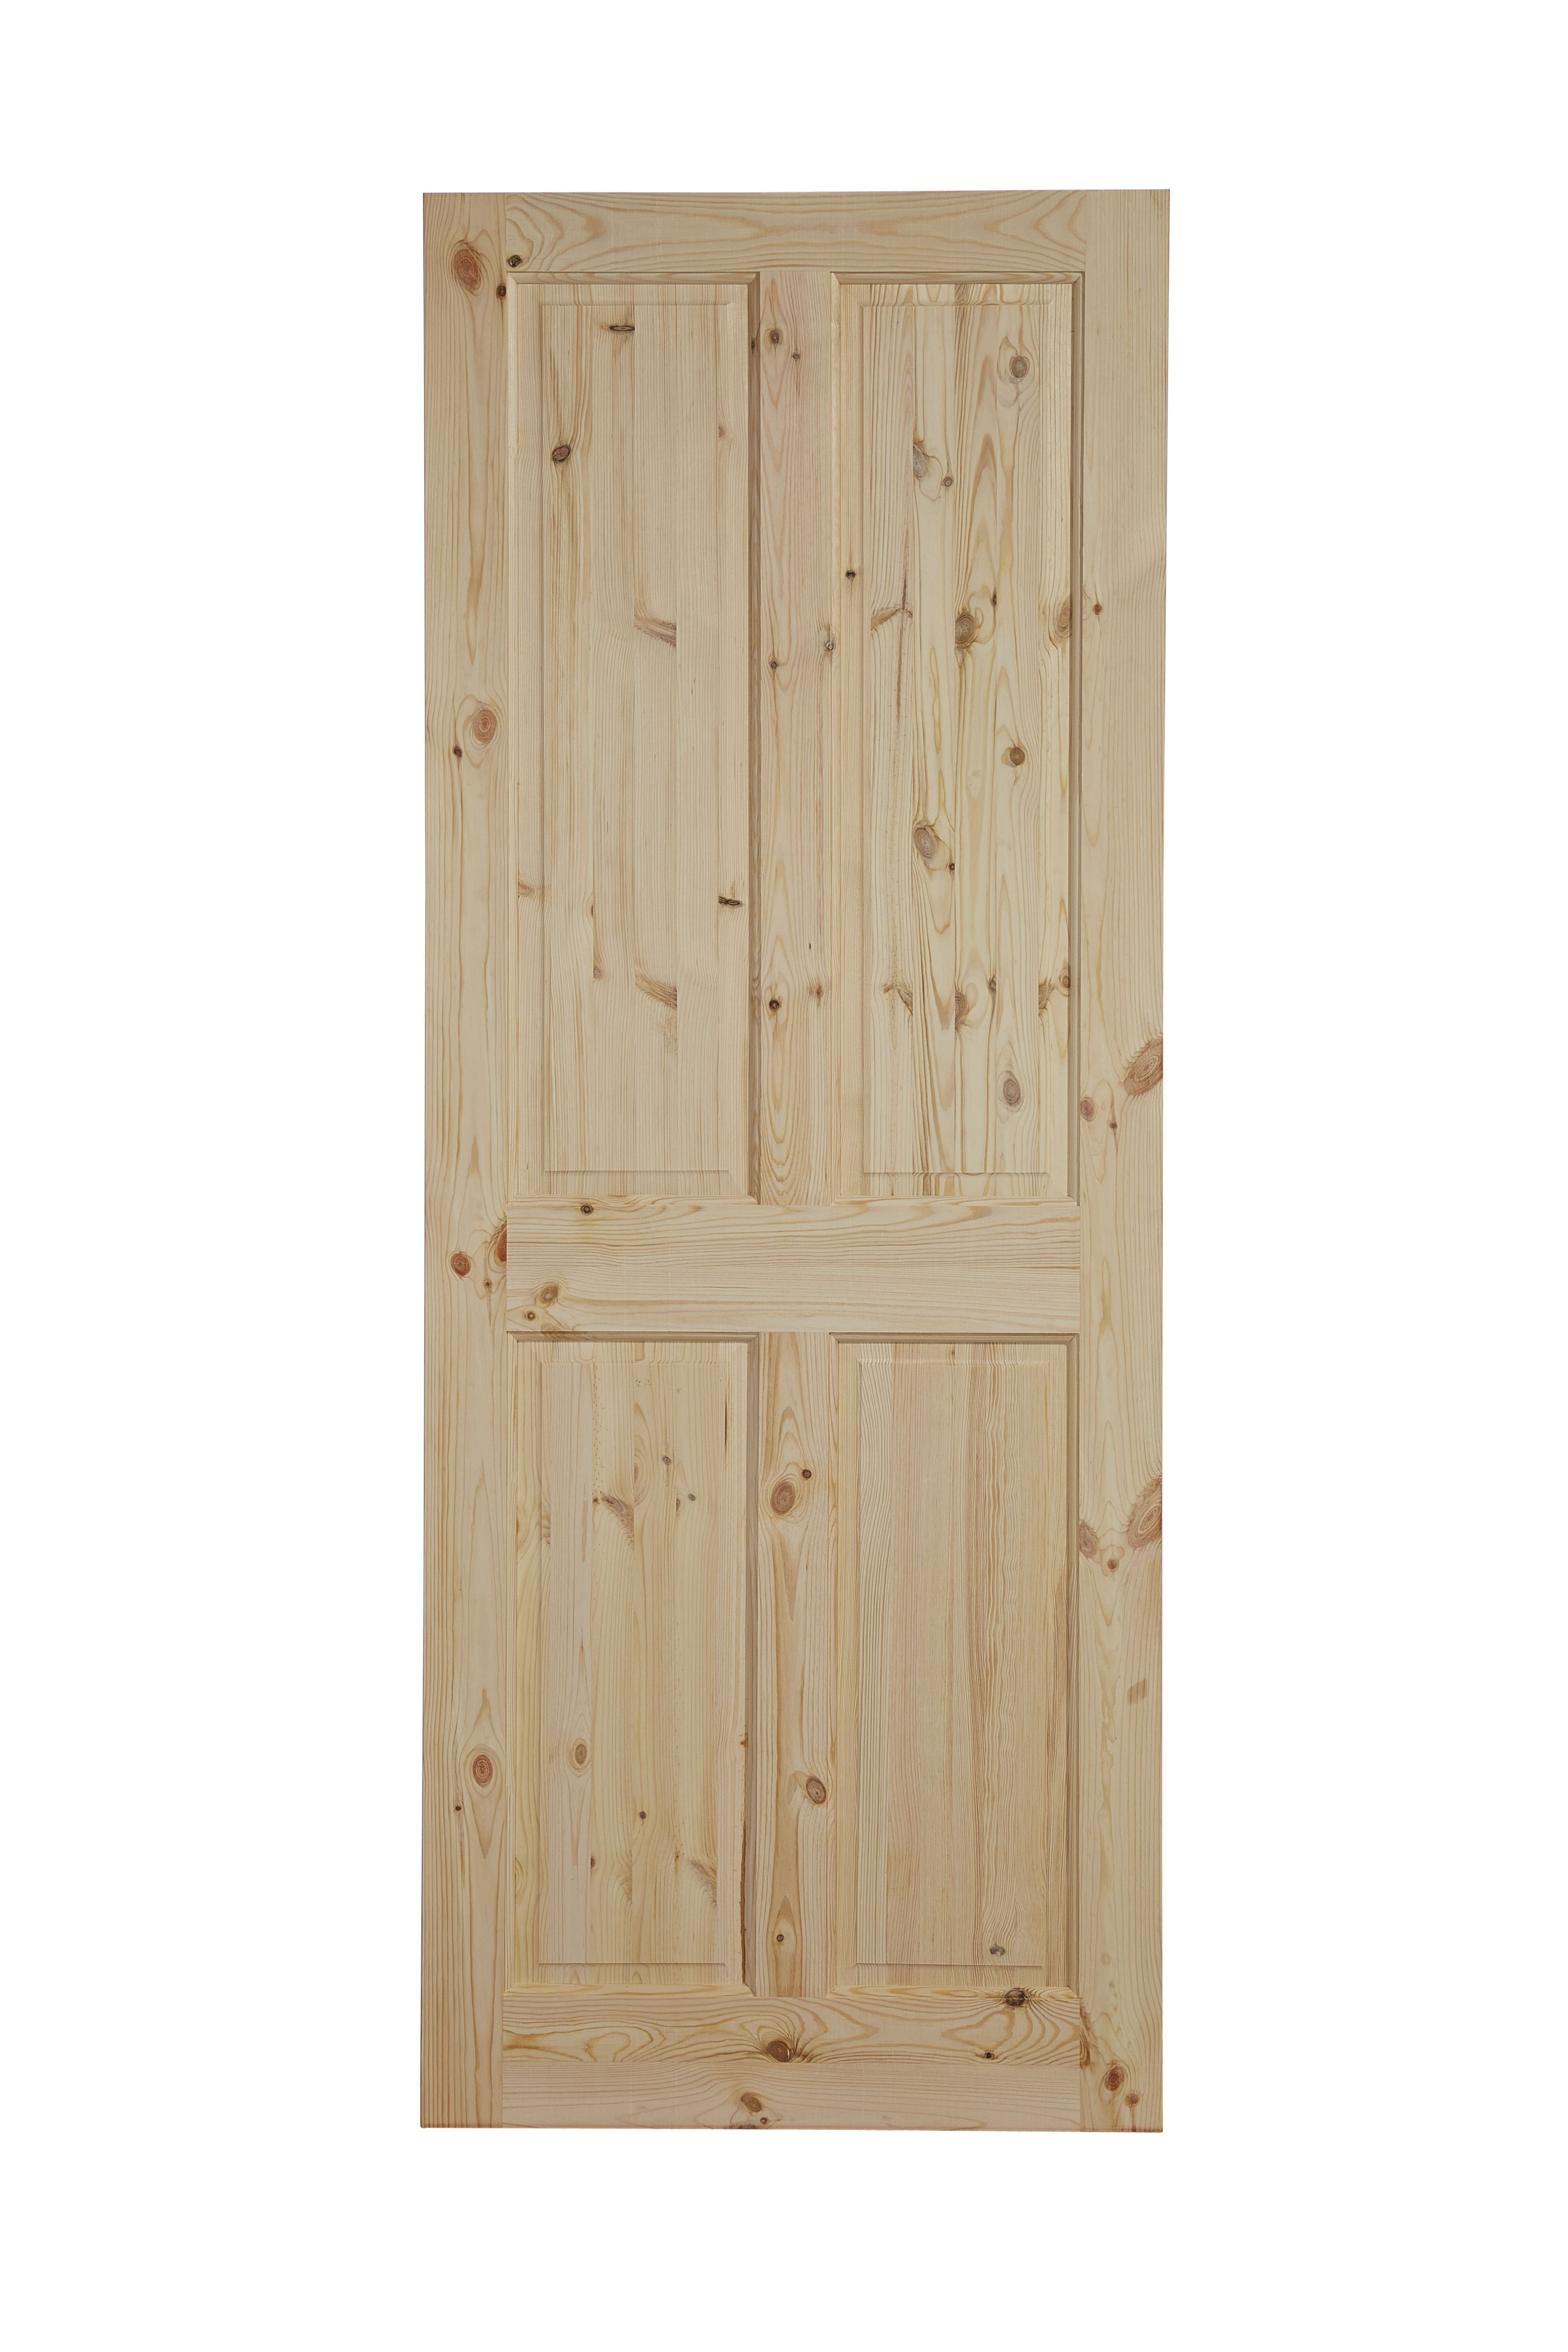 4 Panel Knotty Pine Unglazed Internal Standard Door H 2032mm W